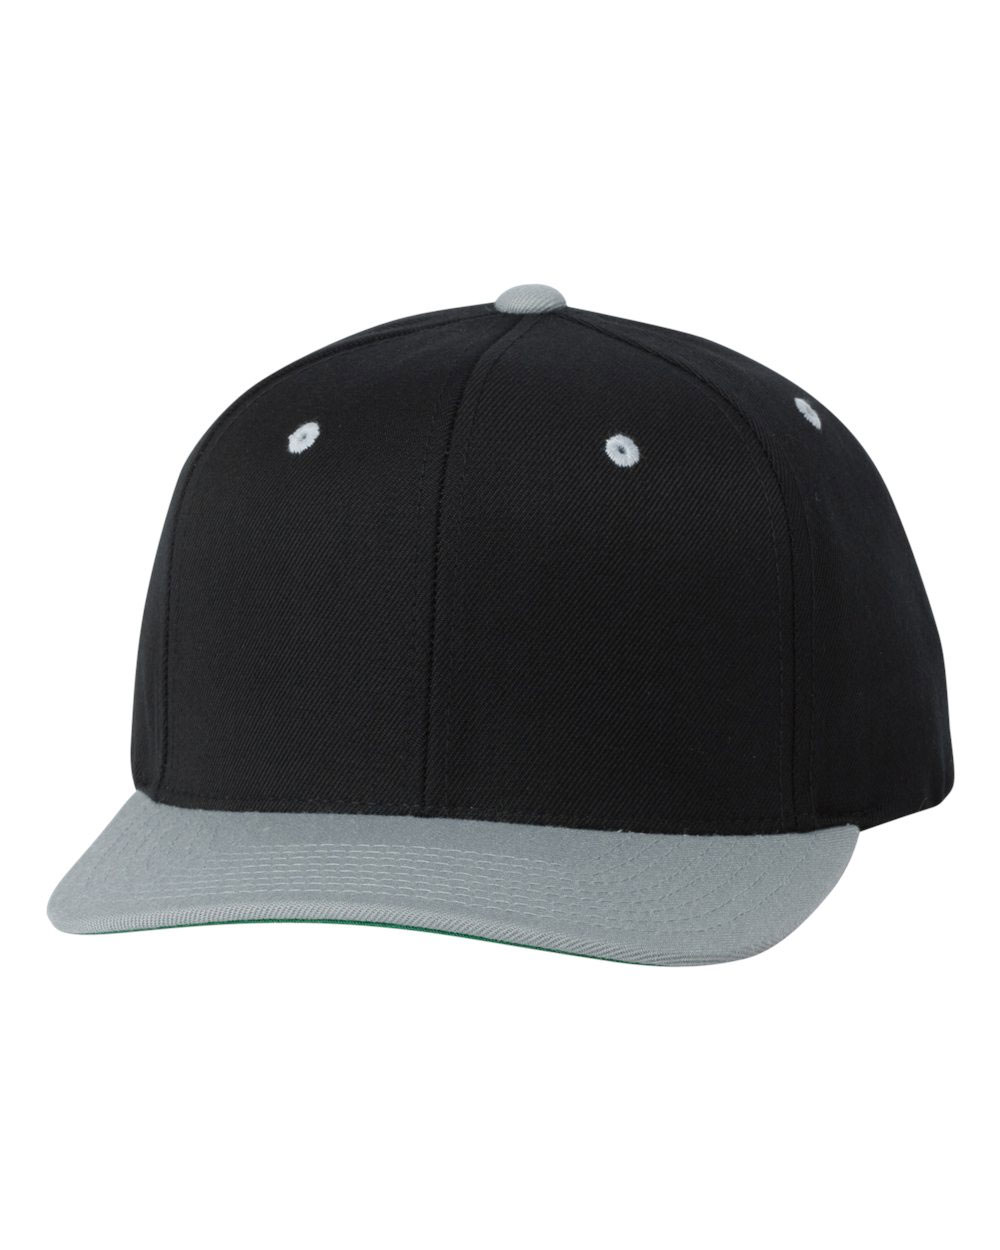 Classic Snapback Cap by Yupoong